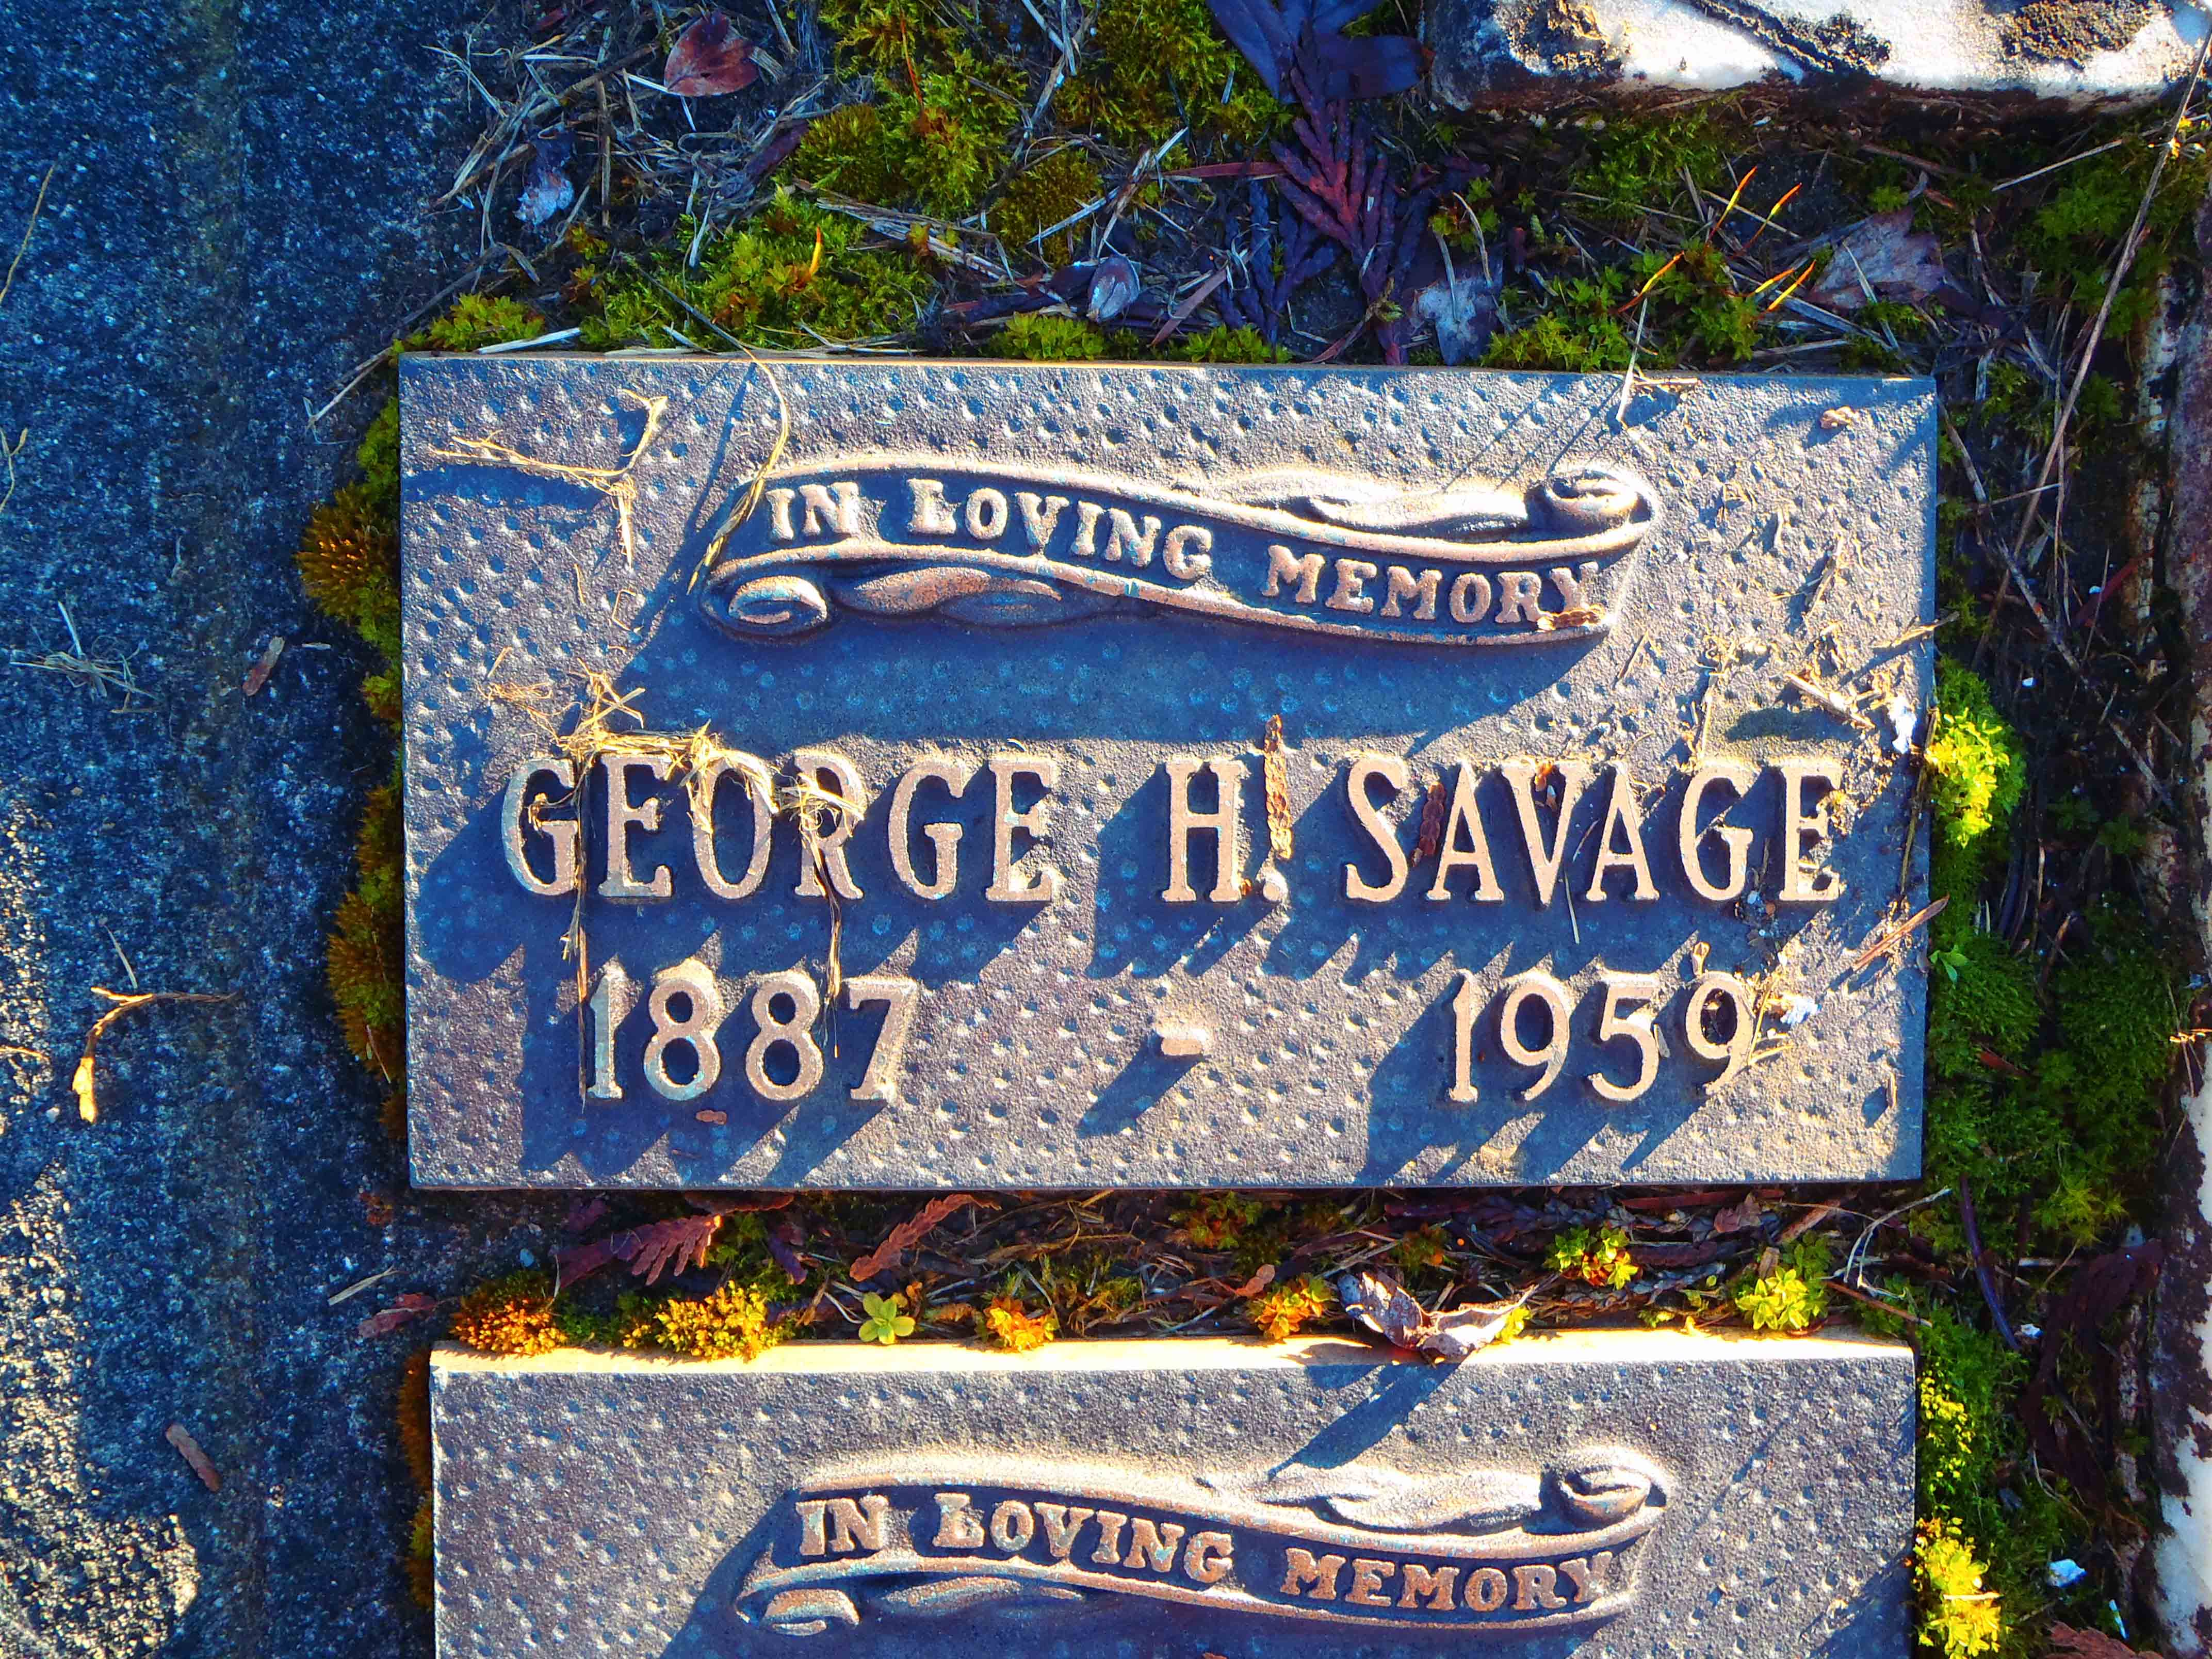 George Henry Savage grave marker, Saint Mary's Somenos